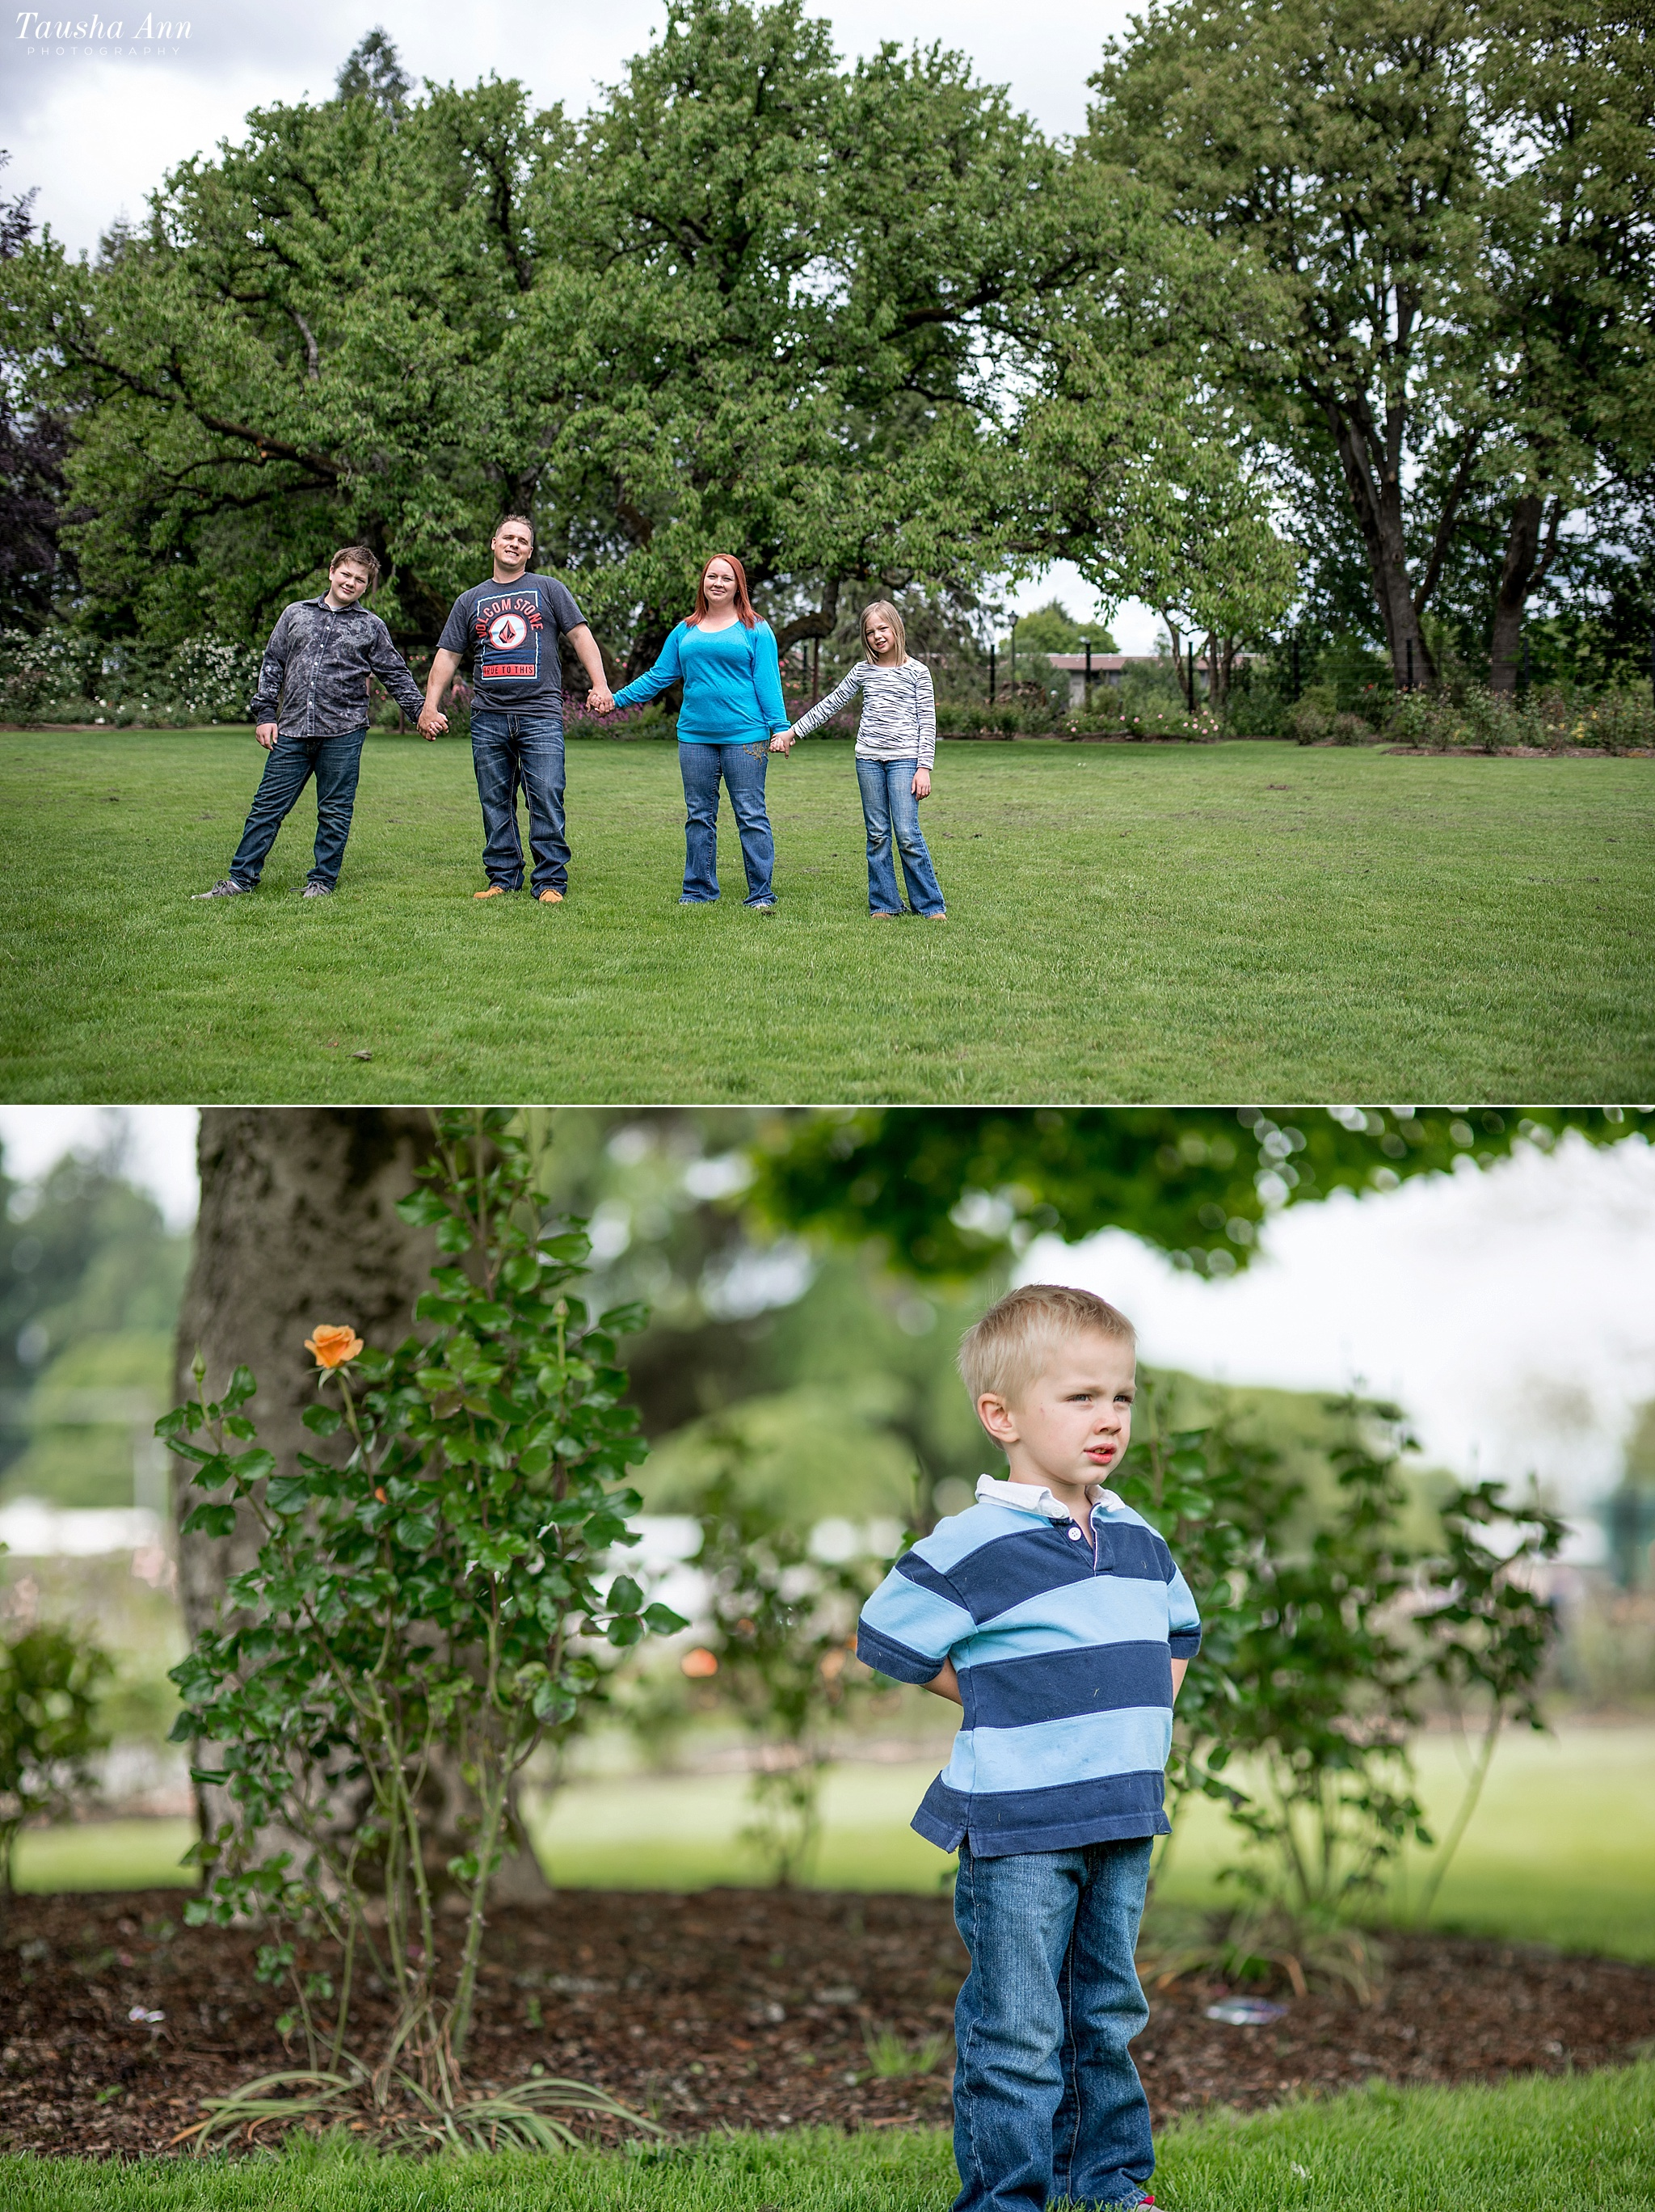 Nashville_Family_Photographer_Tausha_Ann_Photography_Eugene_Oregon_0031